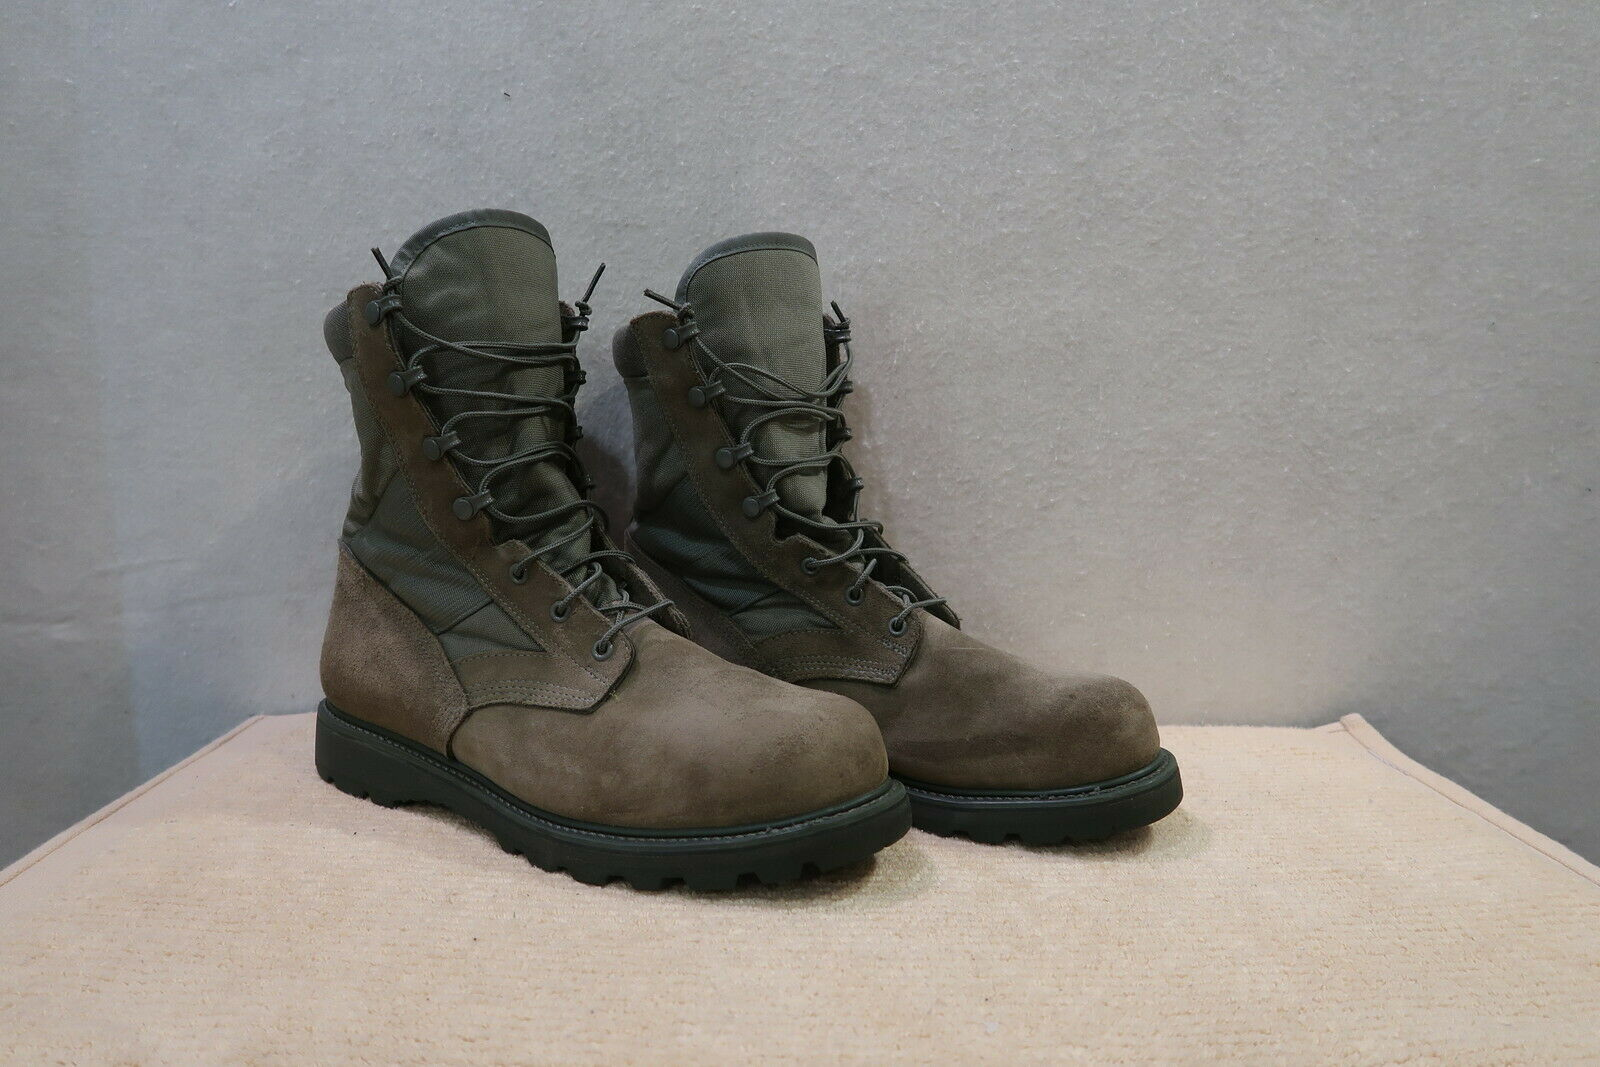 Mens UFCW Olive Drab Sage Green Steel Safety Toe Work Military Boots 12 W (WIDE)